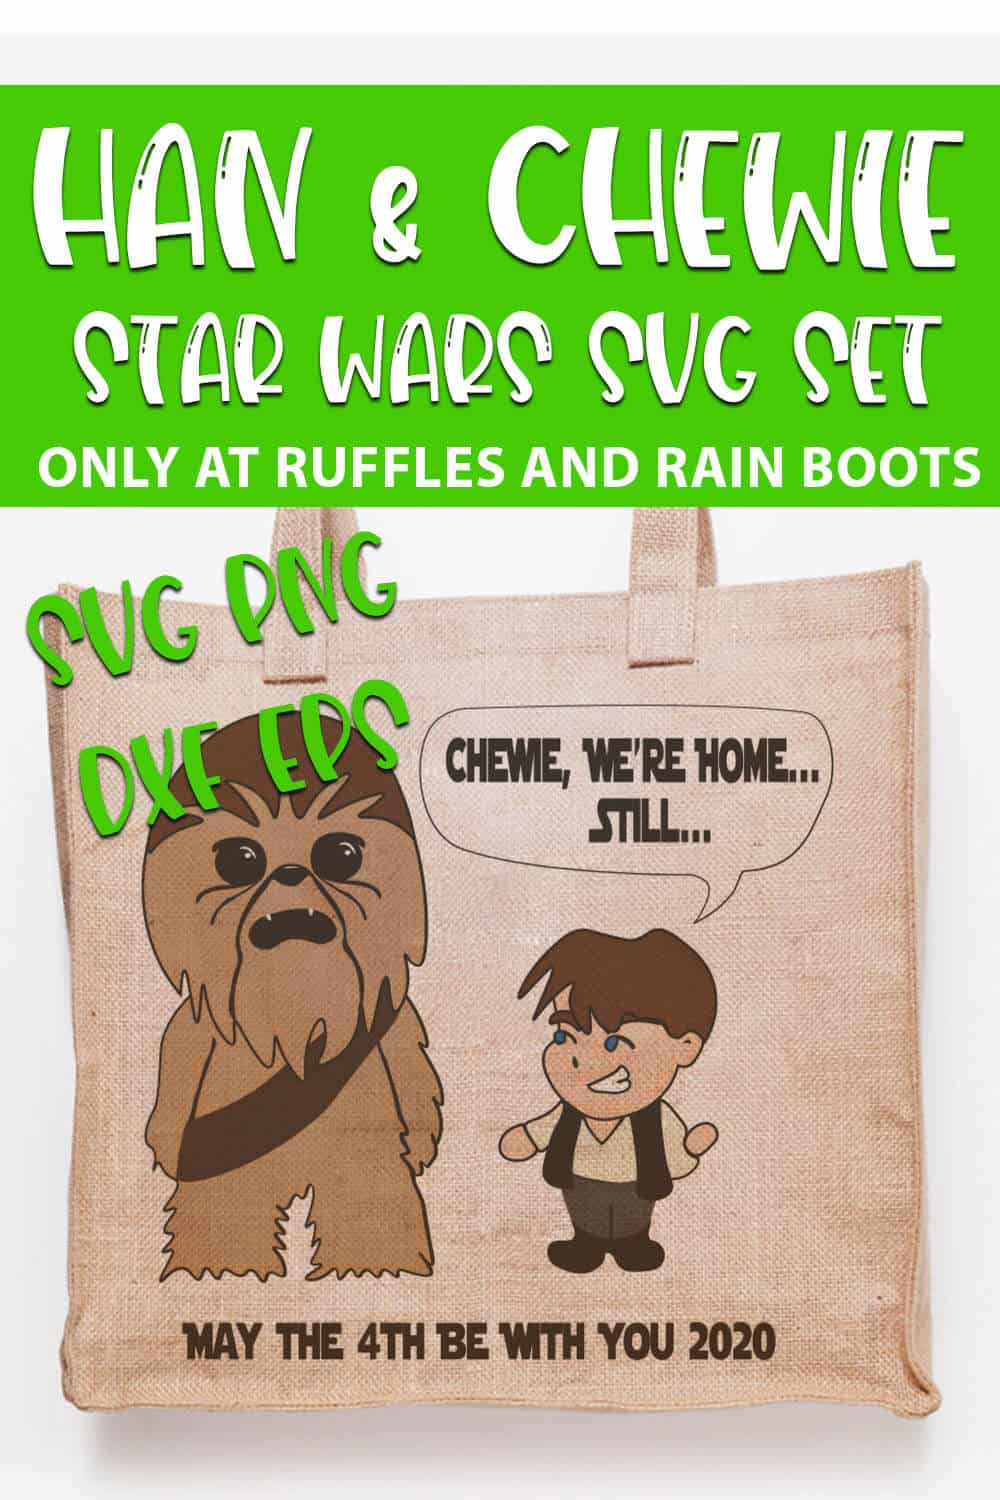 baby han solo and chewbacca svg set on a canvas bag with text which reads han & chewie star wars svg set